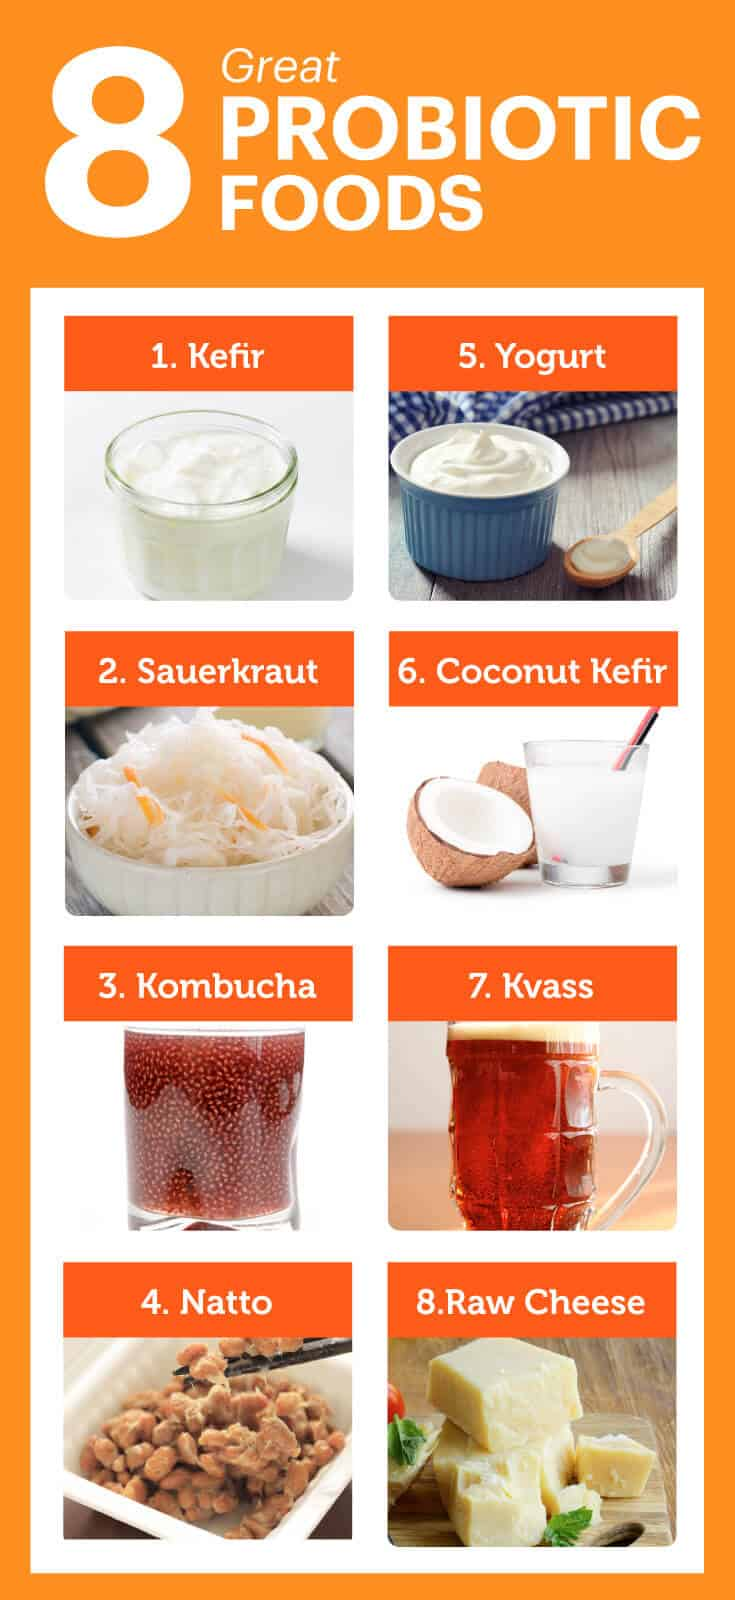 probiotic foods List Chart